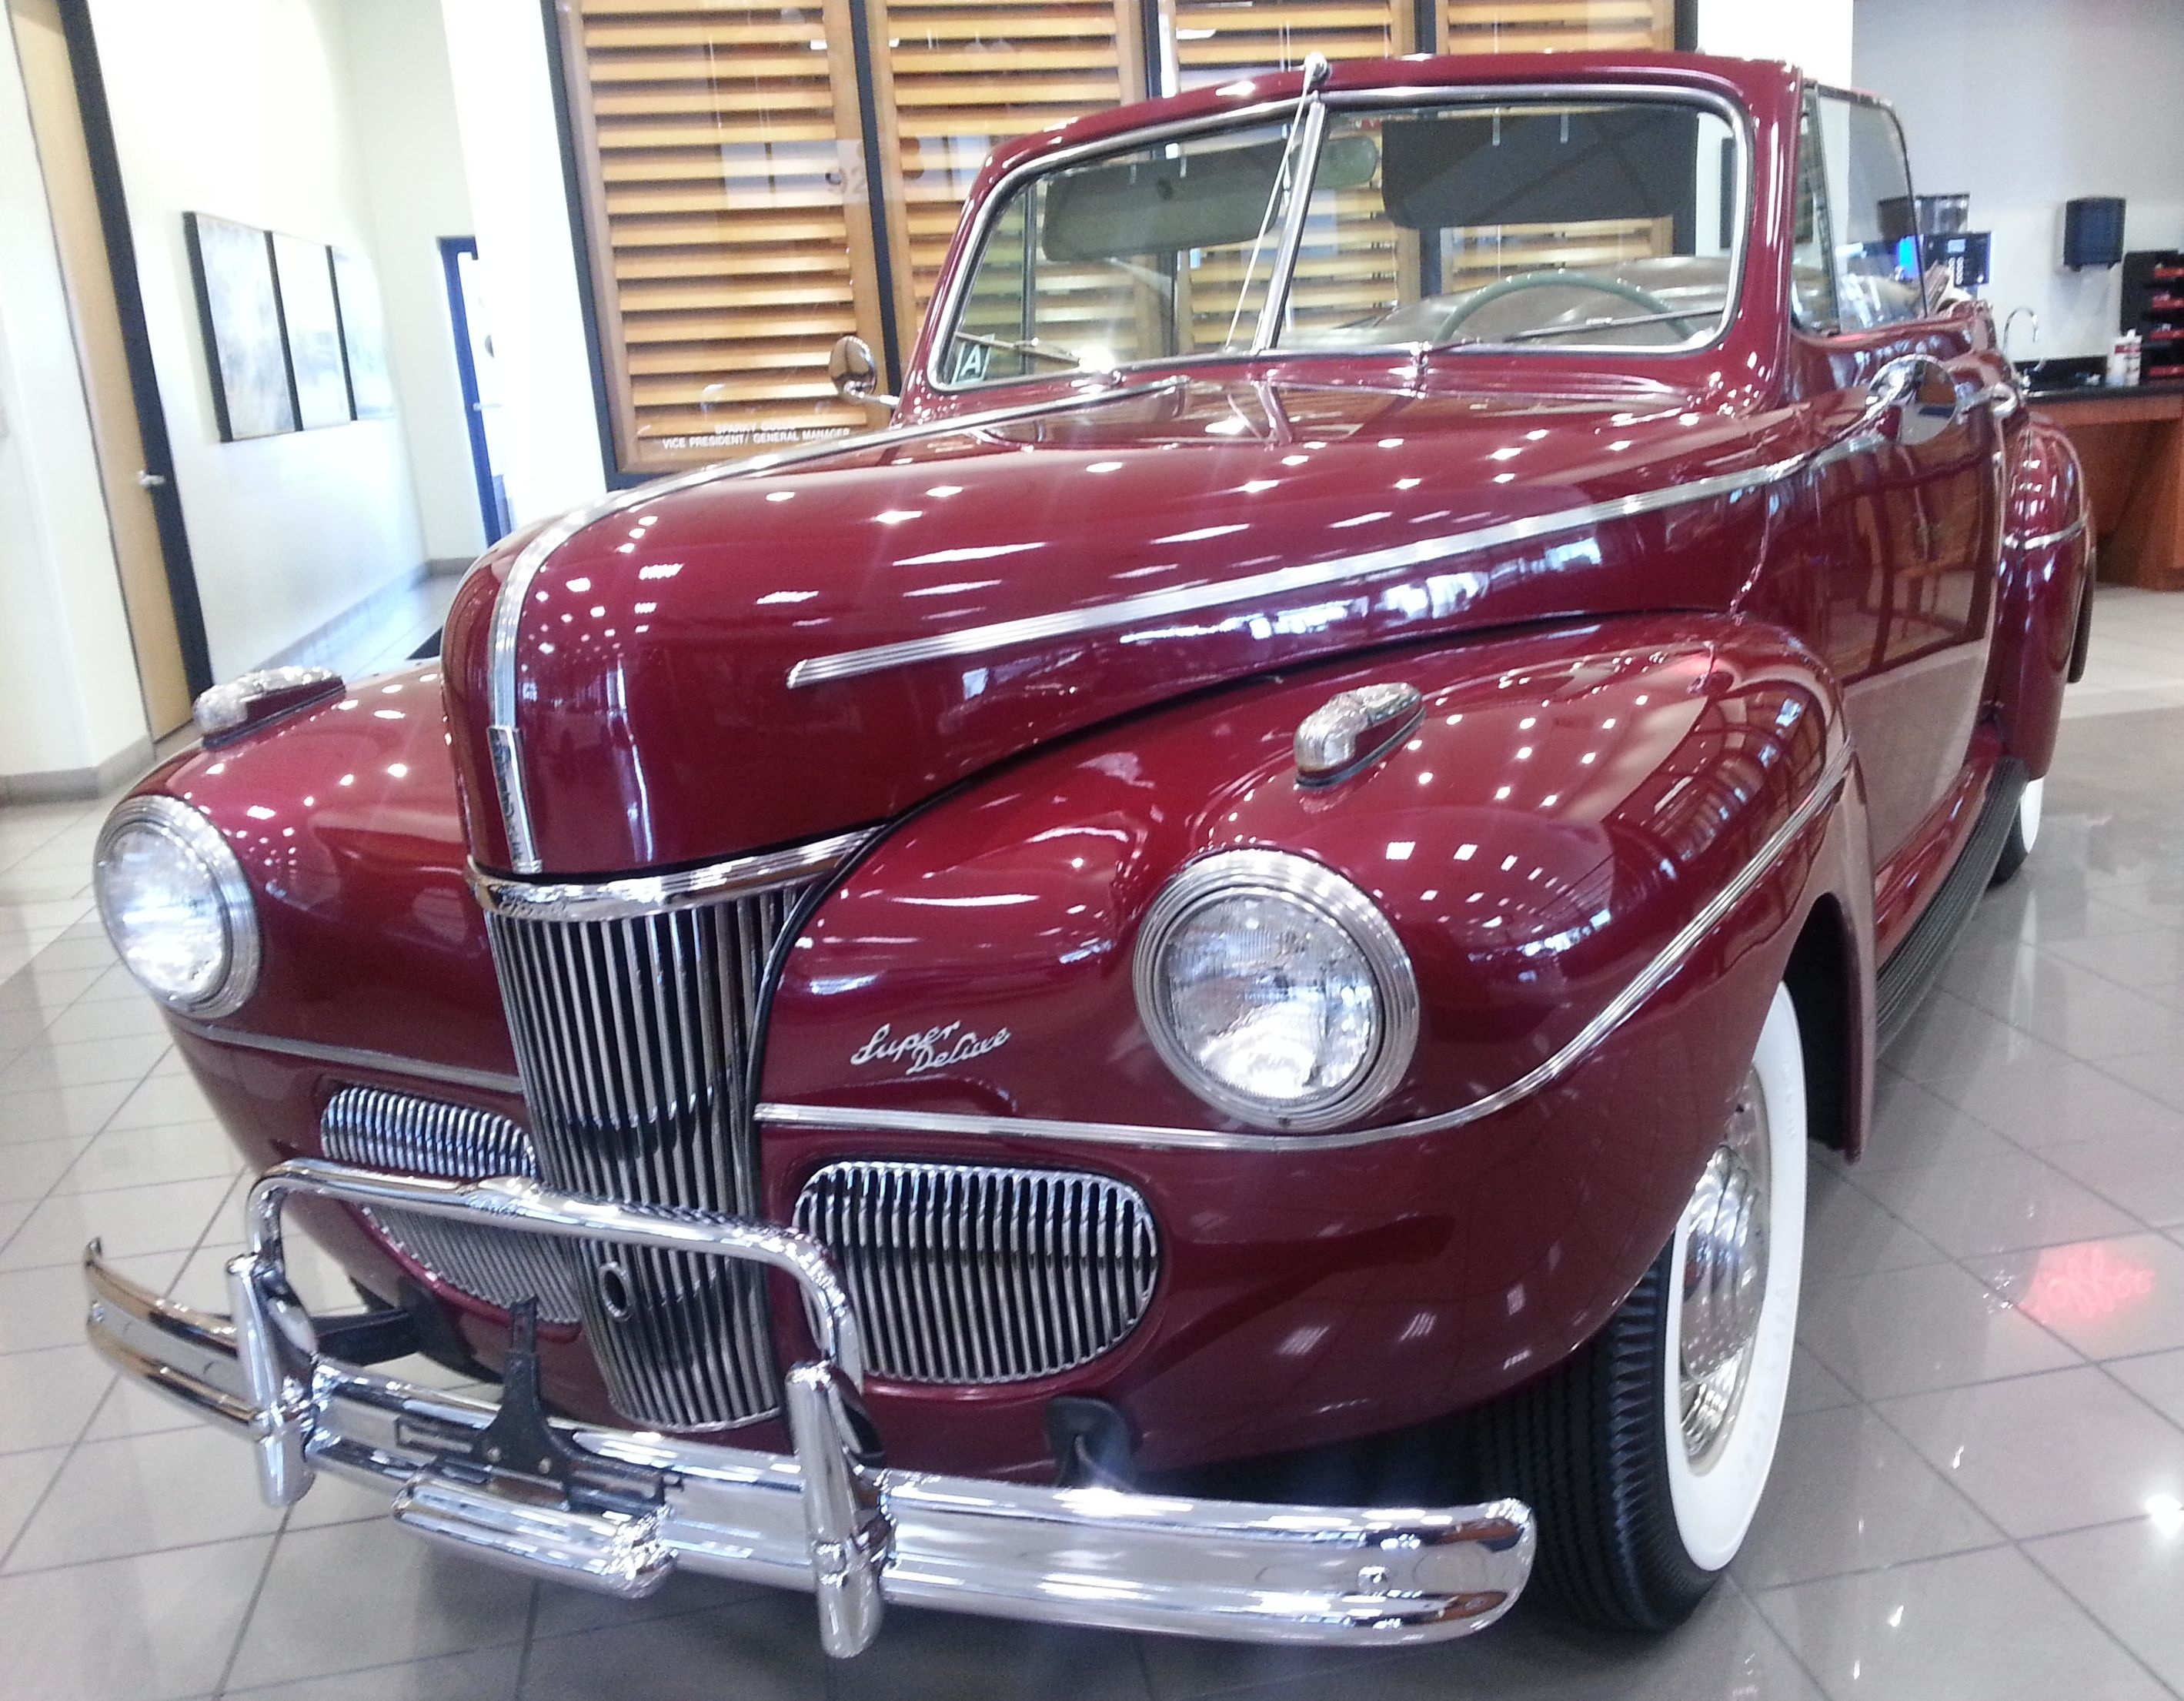 Beautiful 1941 Ford Classic Concept Vehicles Motorcycles Lincoln Town Car Cars Vintage Automobile